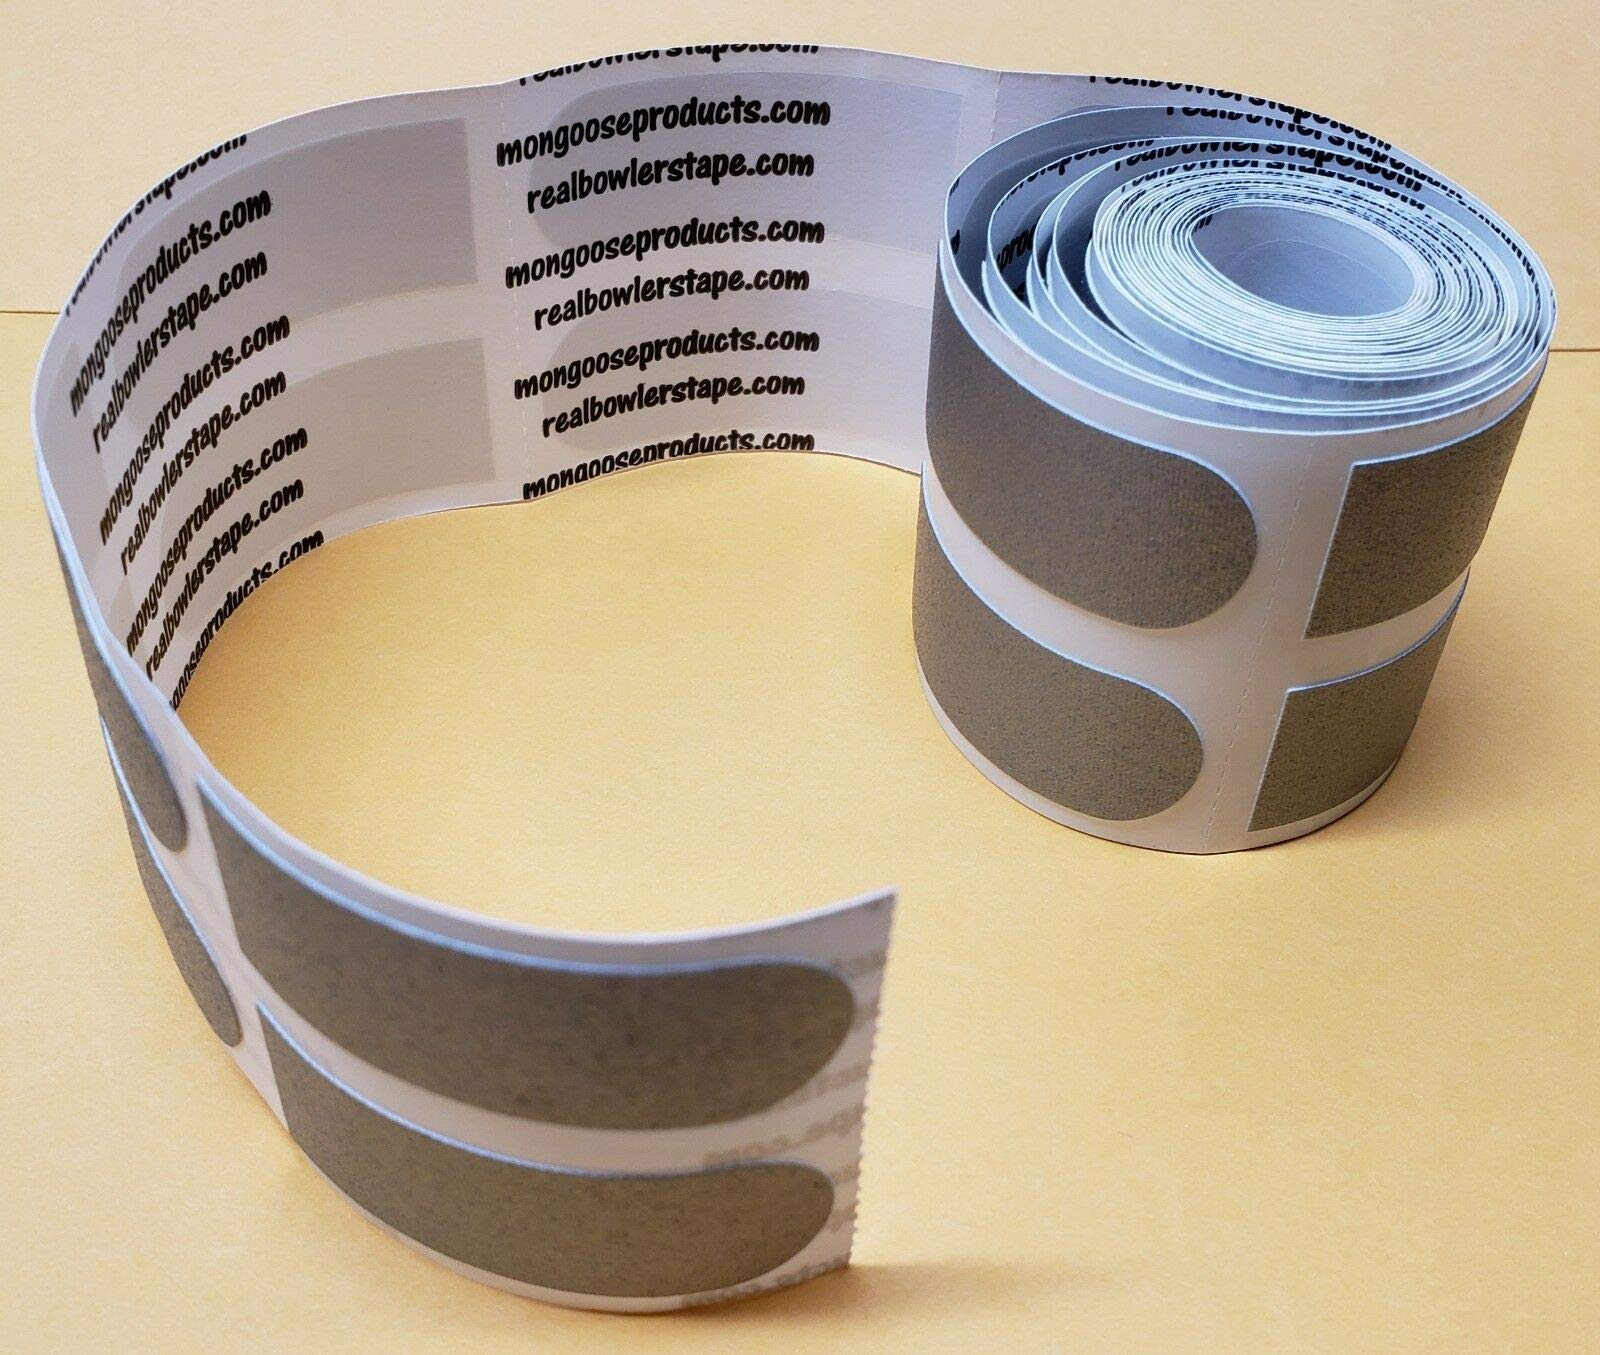 Real Bowler's Tape, Roll of 100, 3/4'' Silver/Texture